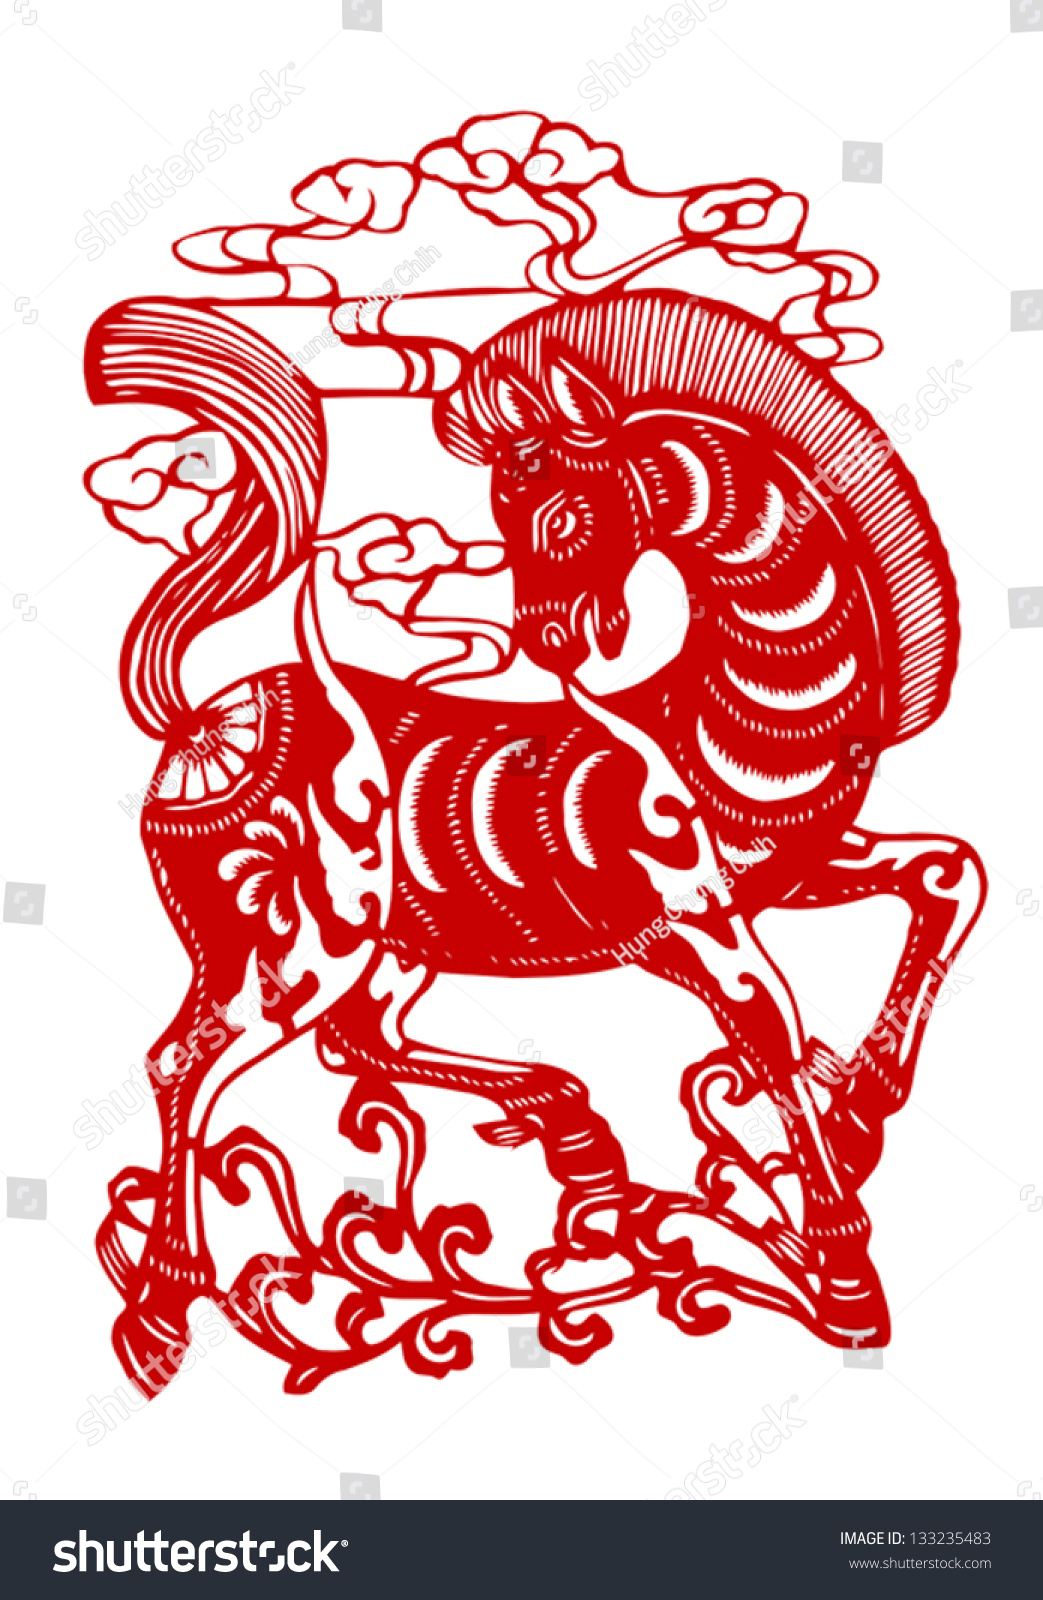 Silhouettes of chinese zodiac animals — Stock Vector